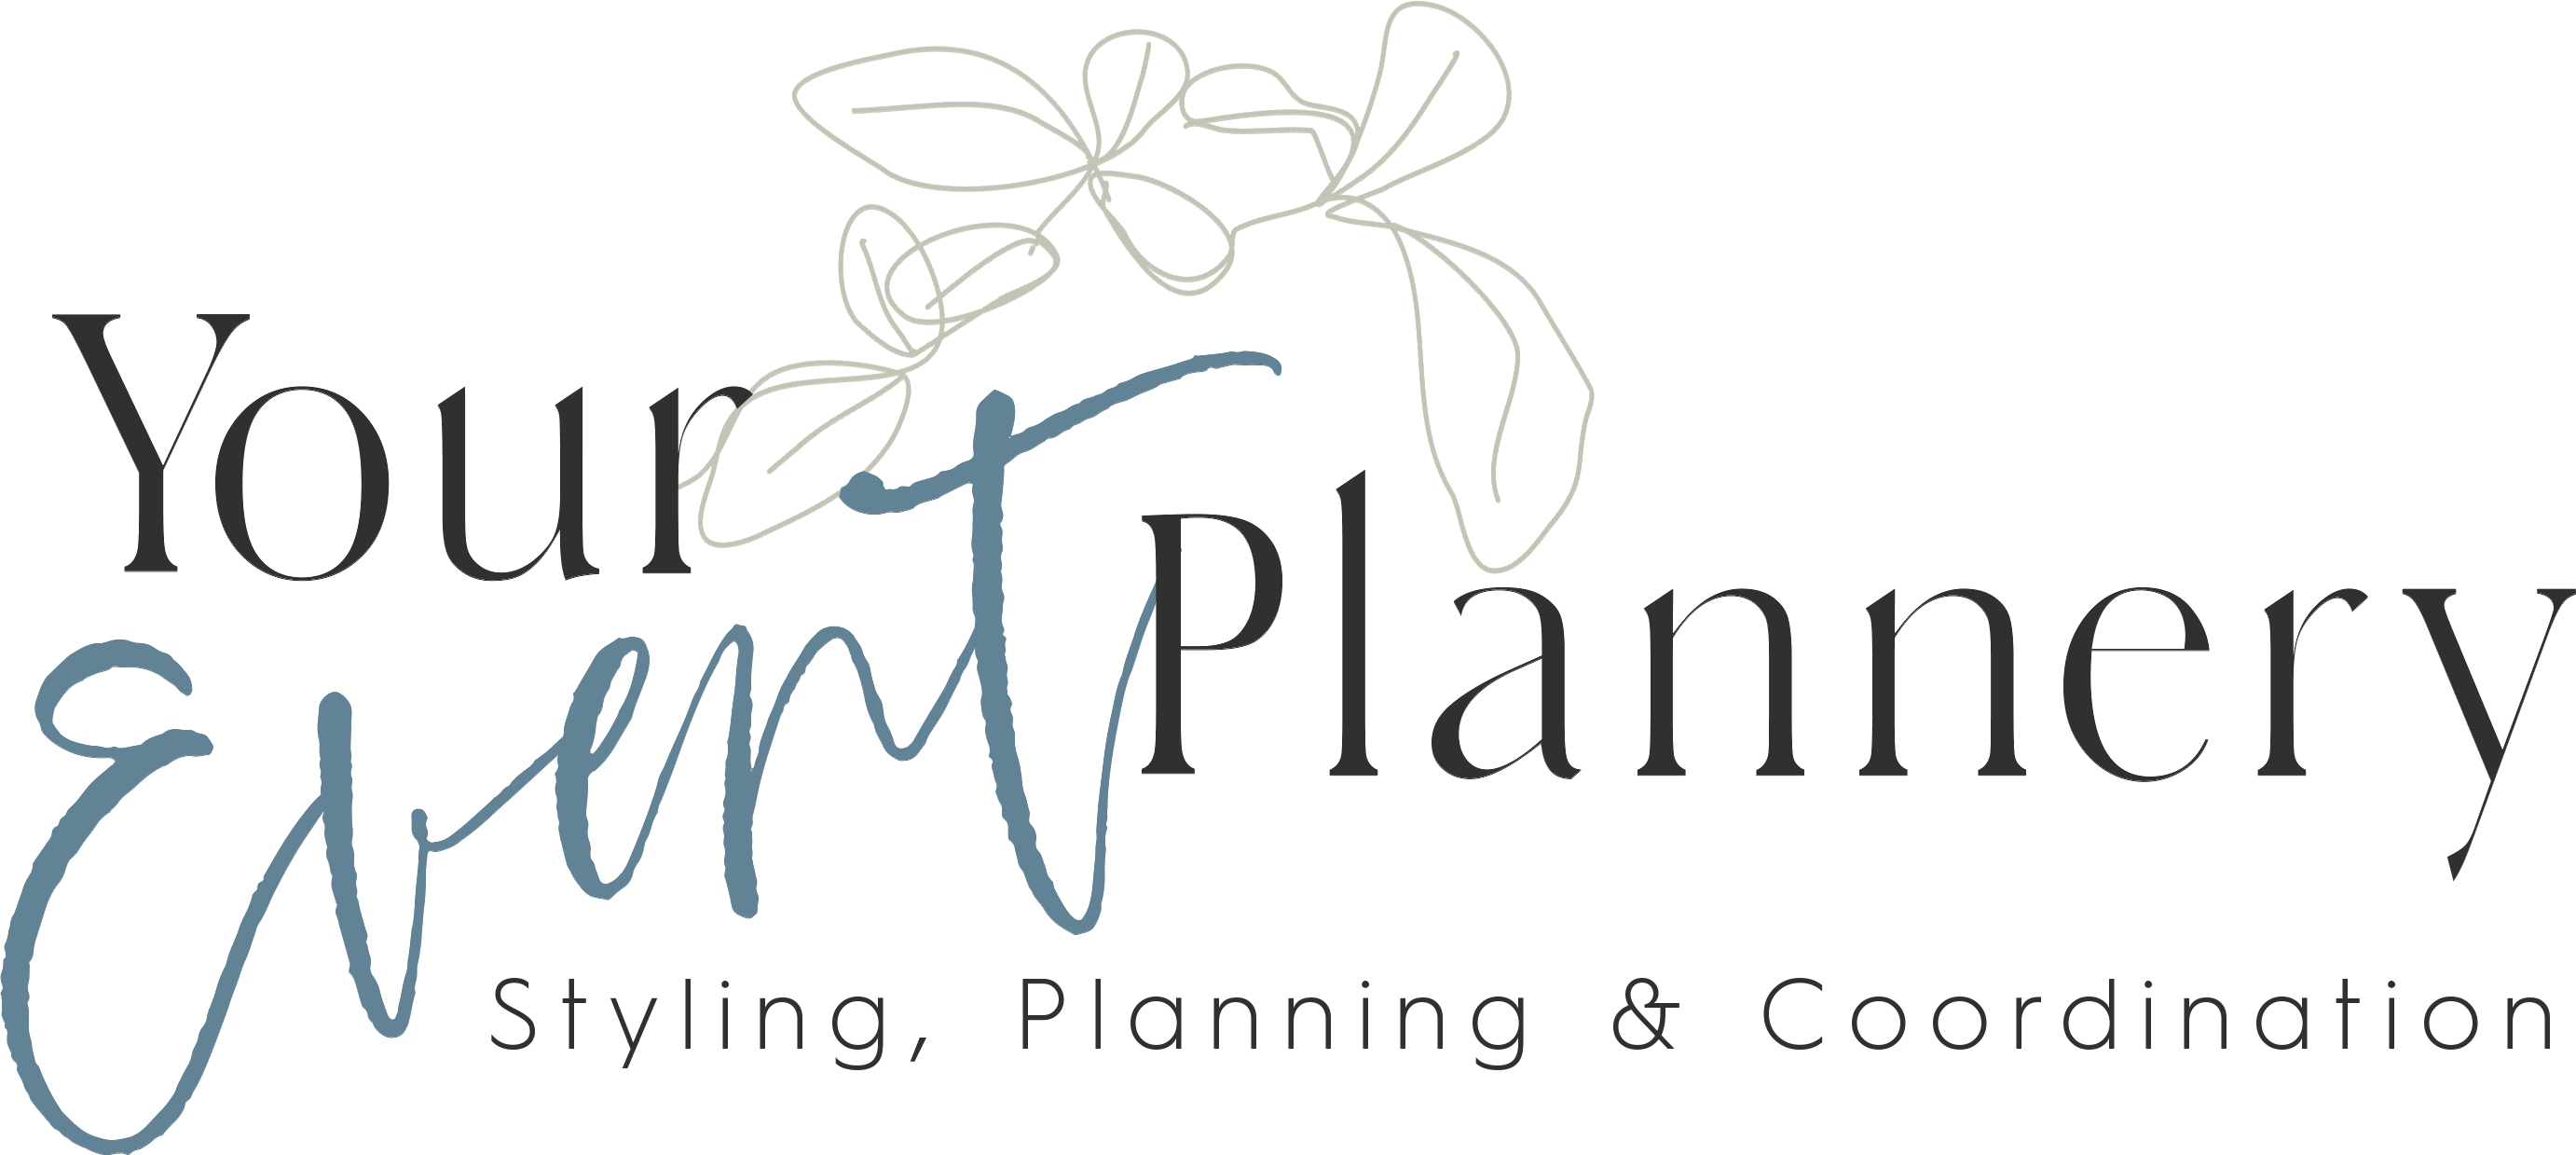 Your Event Plannery- Events + Styling